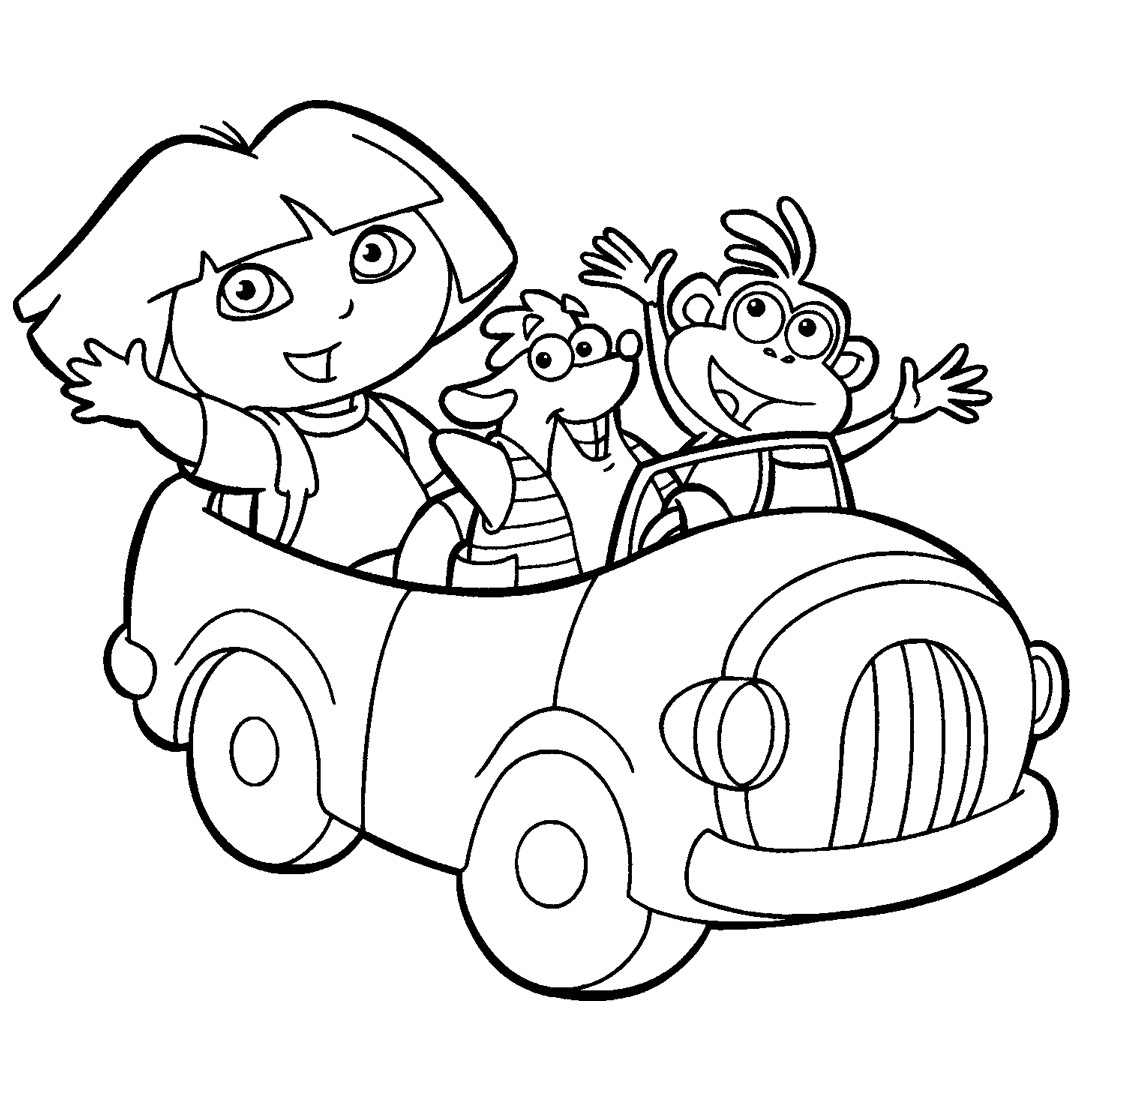 Dora The Explorer Coloring Pages Minister Coloring The Coloring Pages